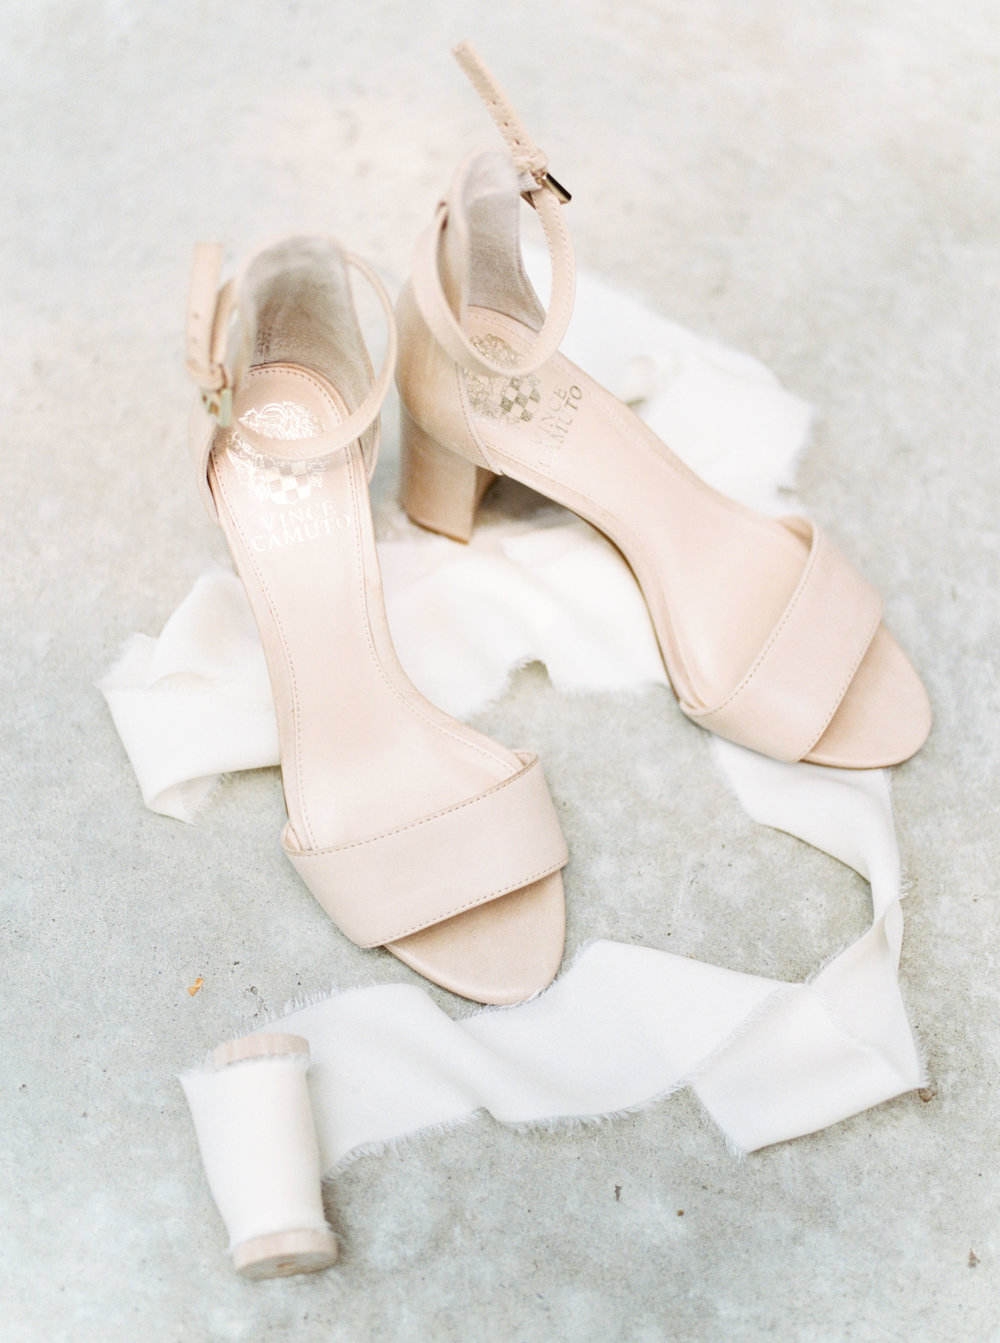 Classy nude peep-toe wedding heels with block heel from Vince Camuto for a summer wedding at Hotel du Village.